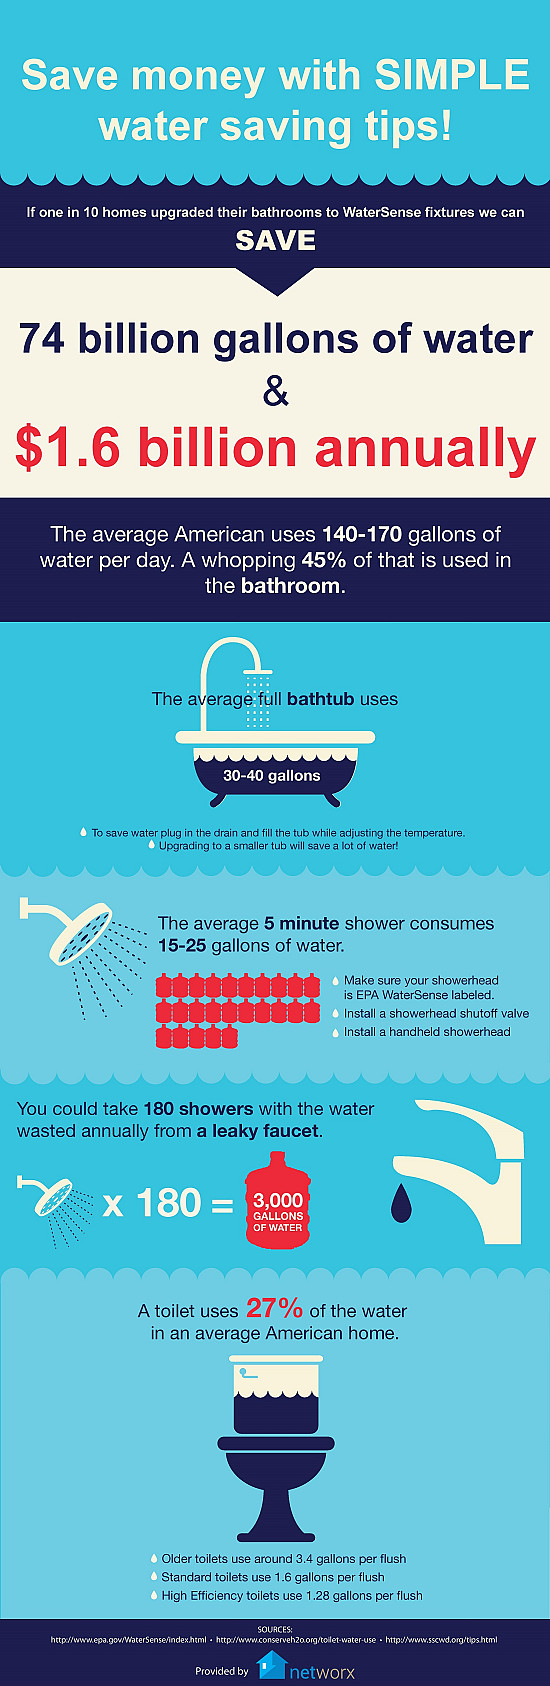 Networx - Infographic: Save Water, Save Money